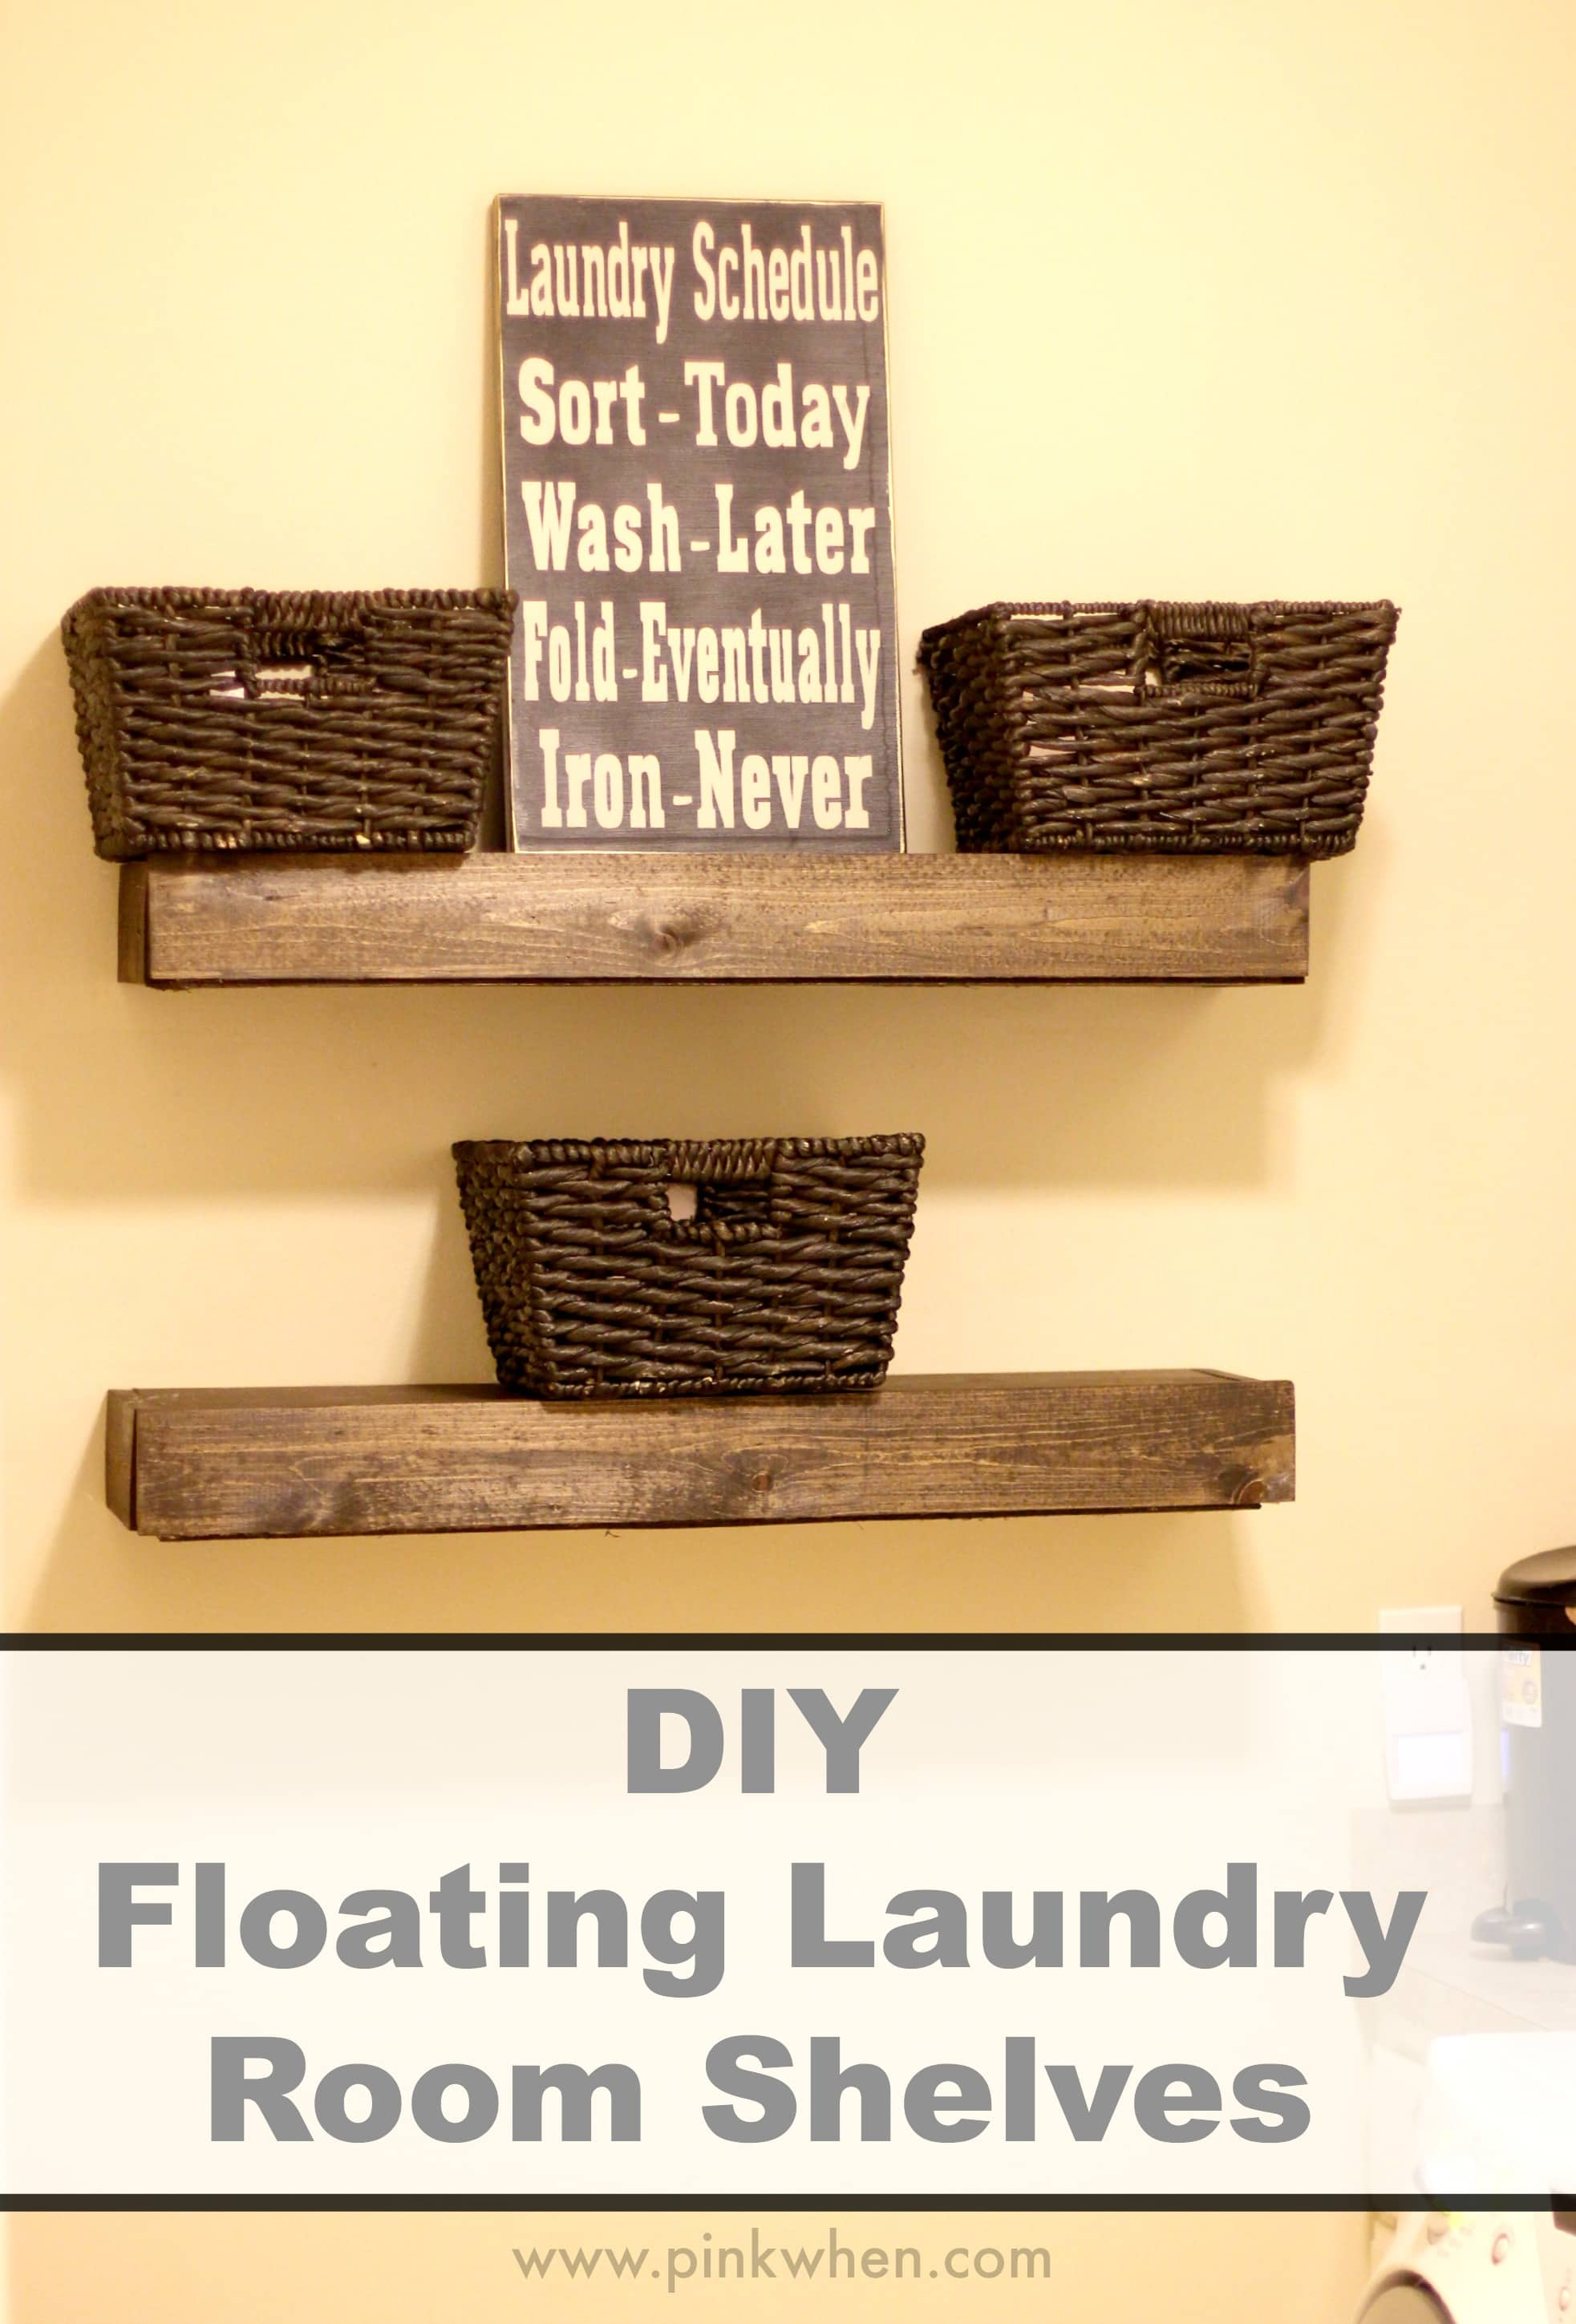 DIY Floating Laundry Room Shelves via PinkWhen.com